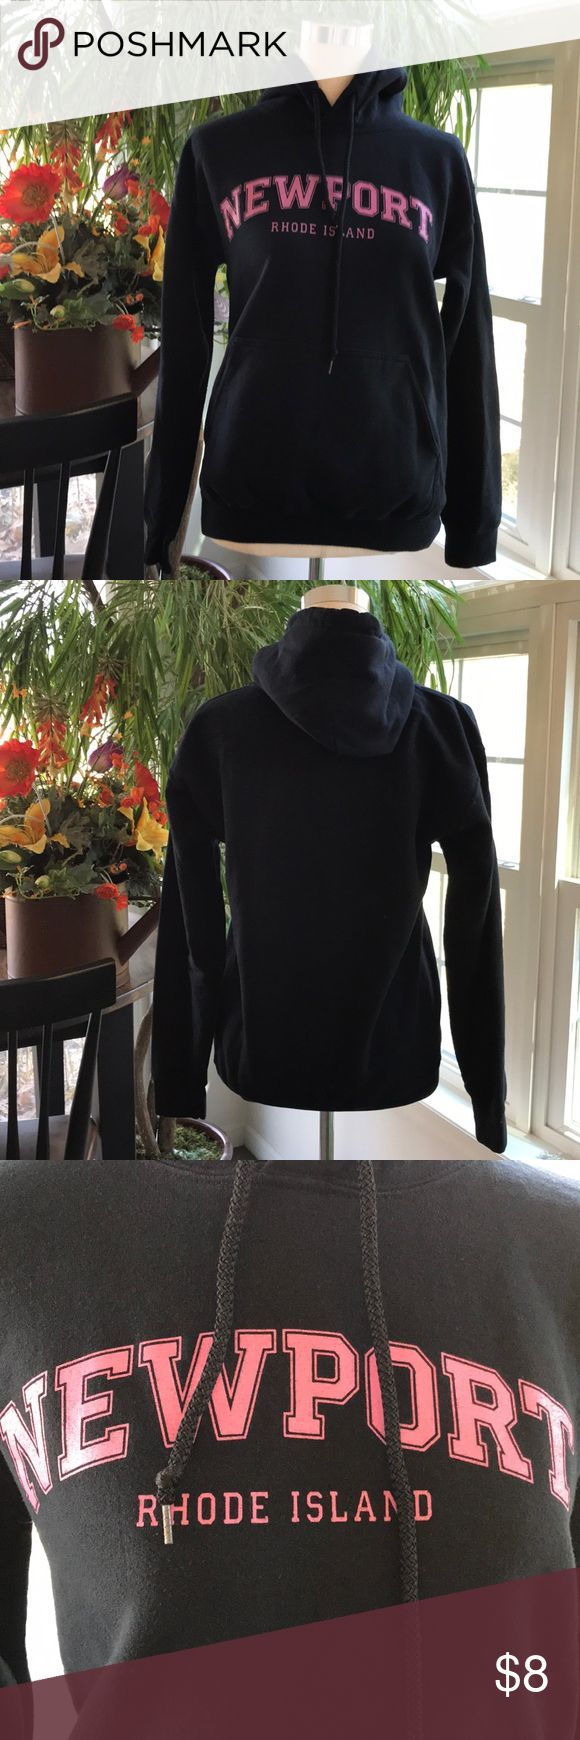 Newport Rhode Island Sweatshirt Newport Rhode Island Sweatshirt  Size Small  Good Used Condition with some wear and pilling, please see photos  Smoke-free home Gildan Tops Sweatshirts & Hoodies